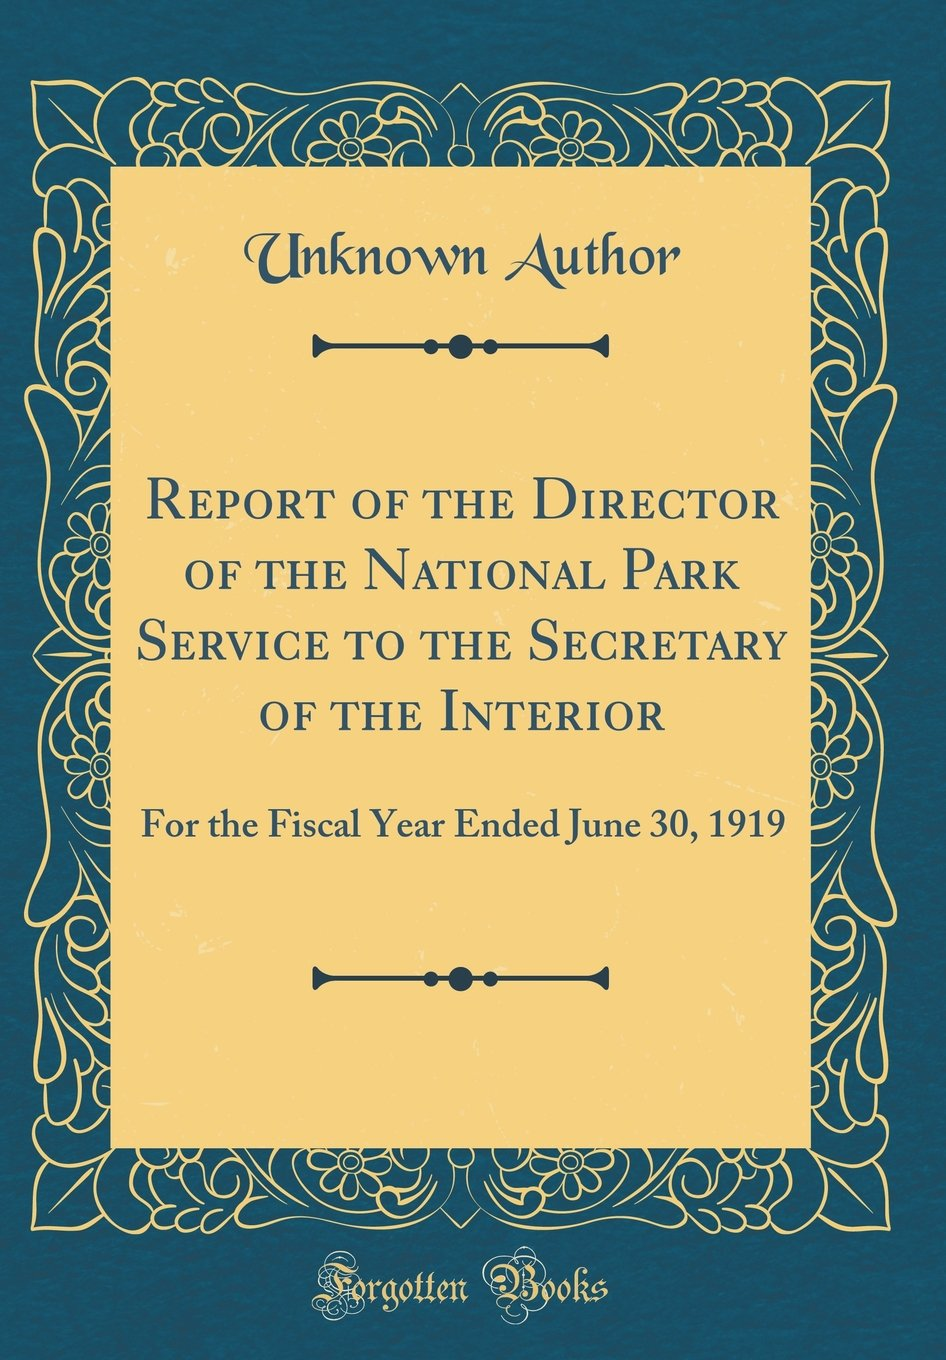 Report of the Director of the National Park Service to the Secretary of the Interior: For the Fiscal Year Ended June 30, 1919 (Classic Reprint) pdf